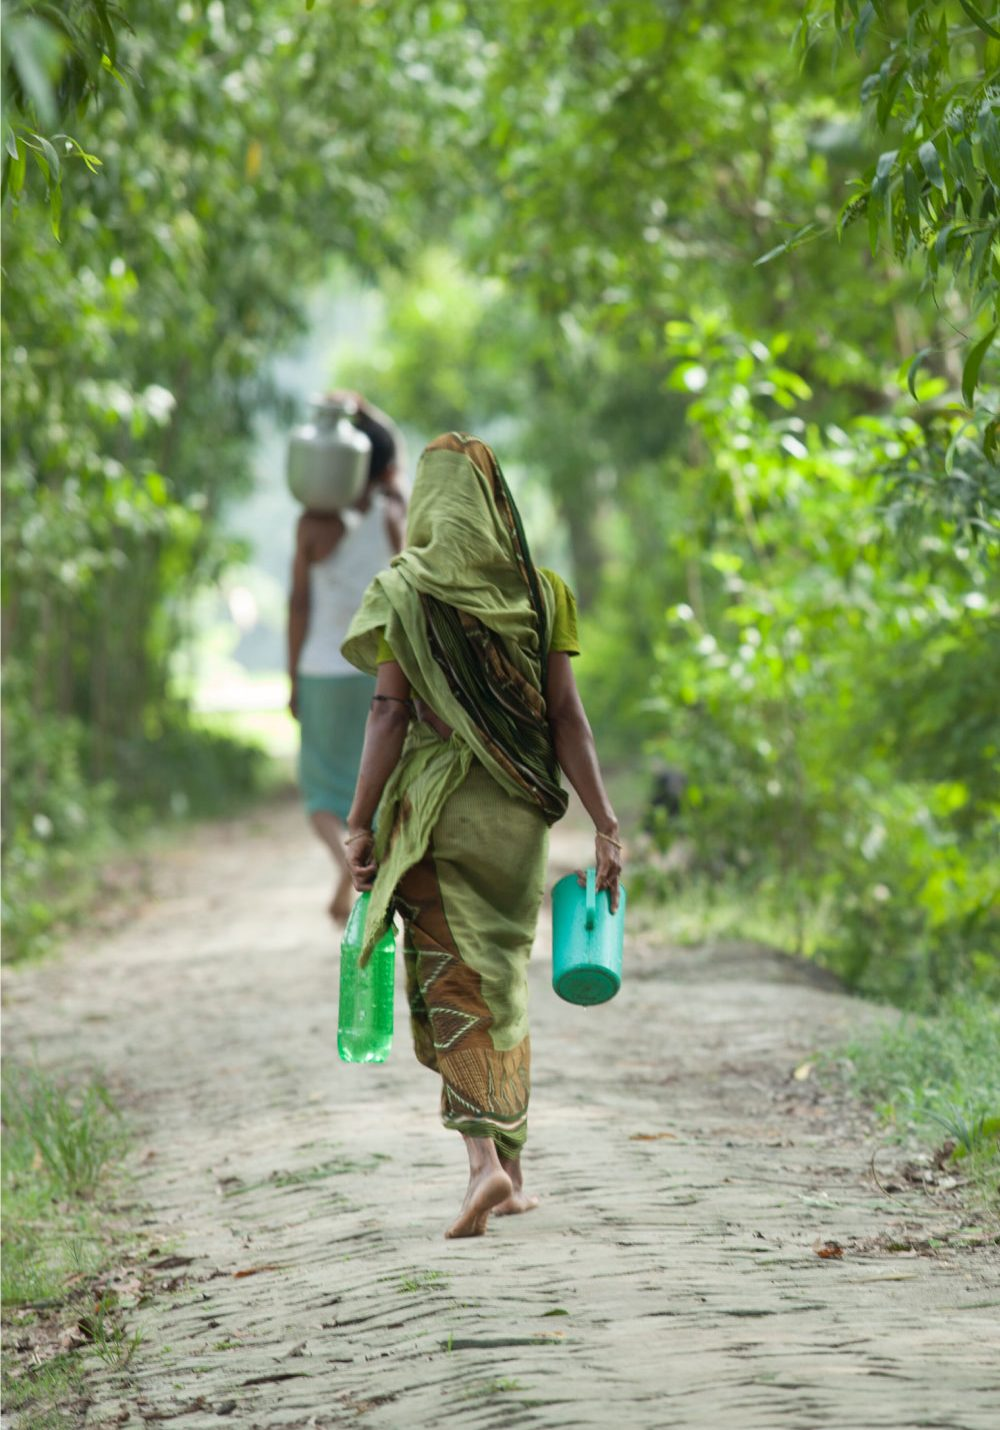 villagers carrying water | Support Clean Water | Get Involved | Clean Water in India | Where We Work | Water For People